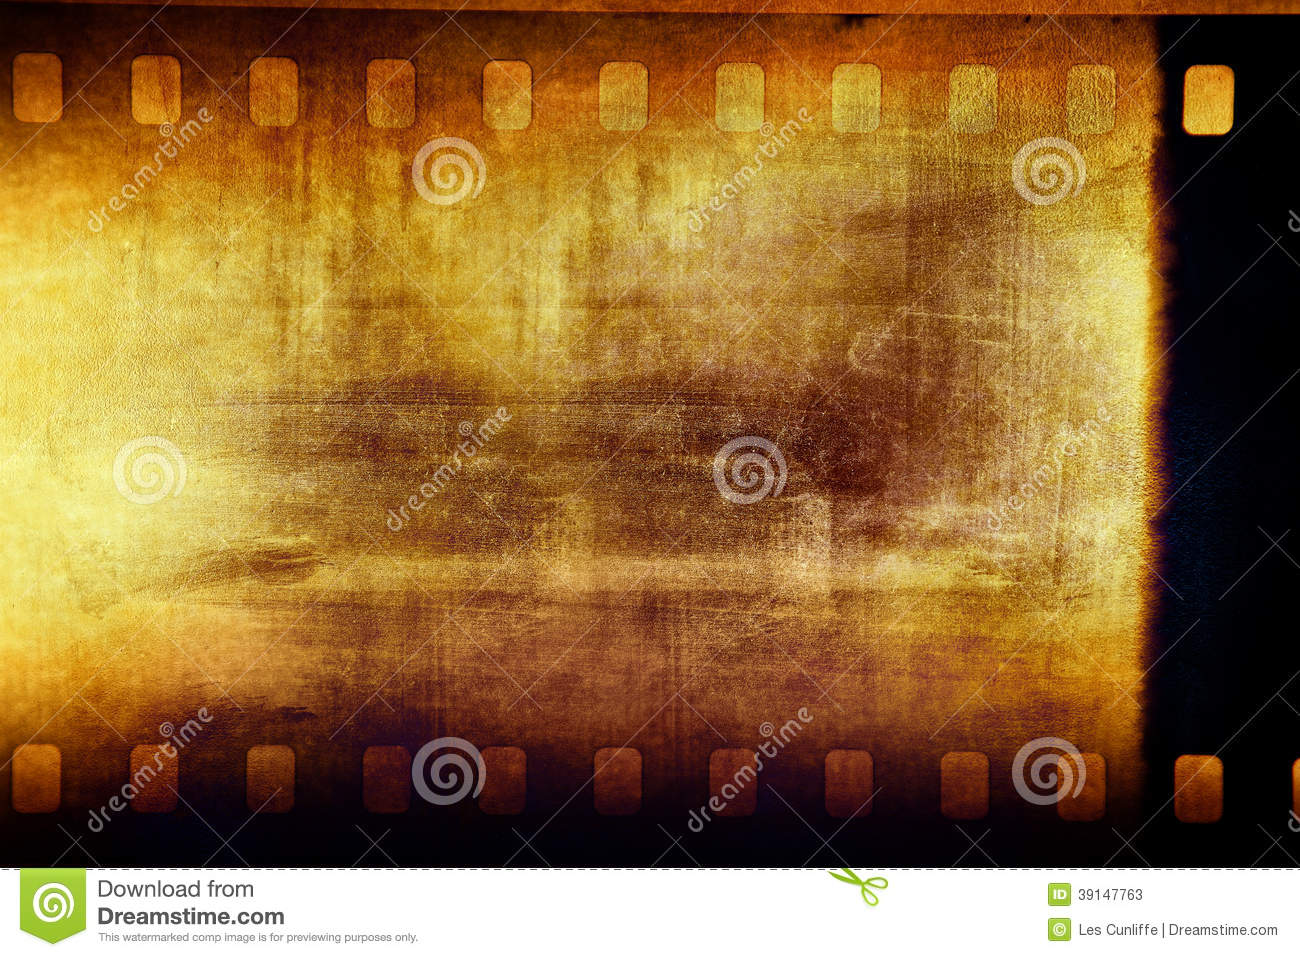 Filmstrip Stock Photo - Image: 39147763